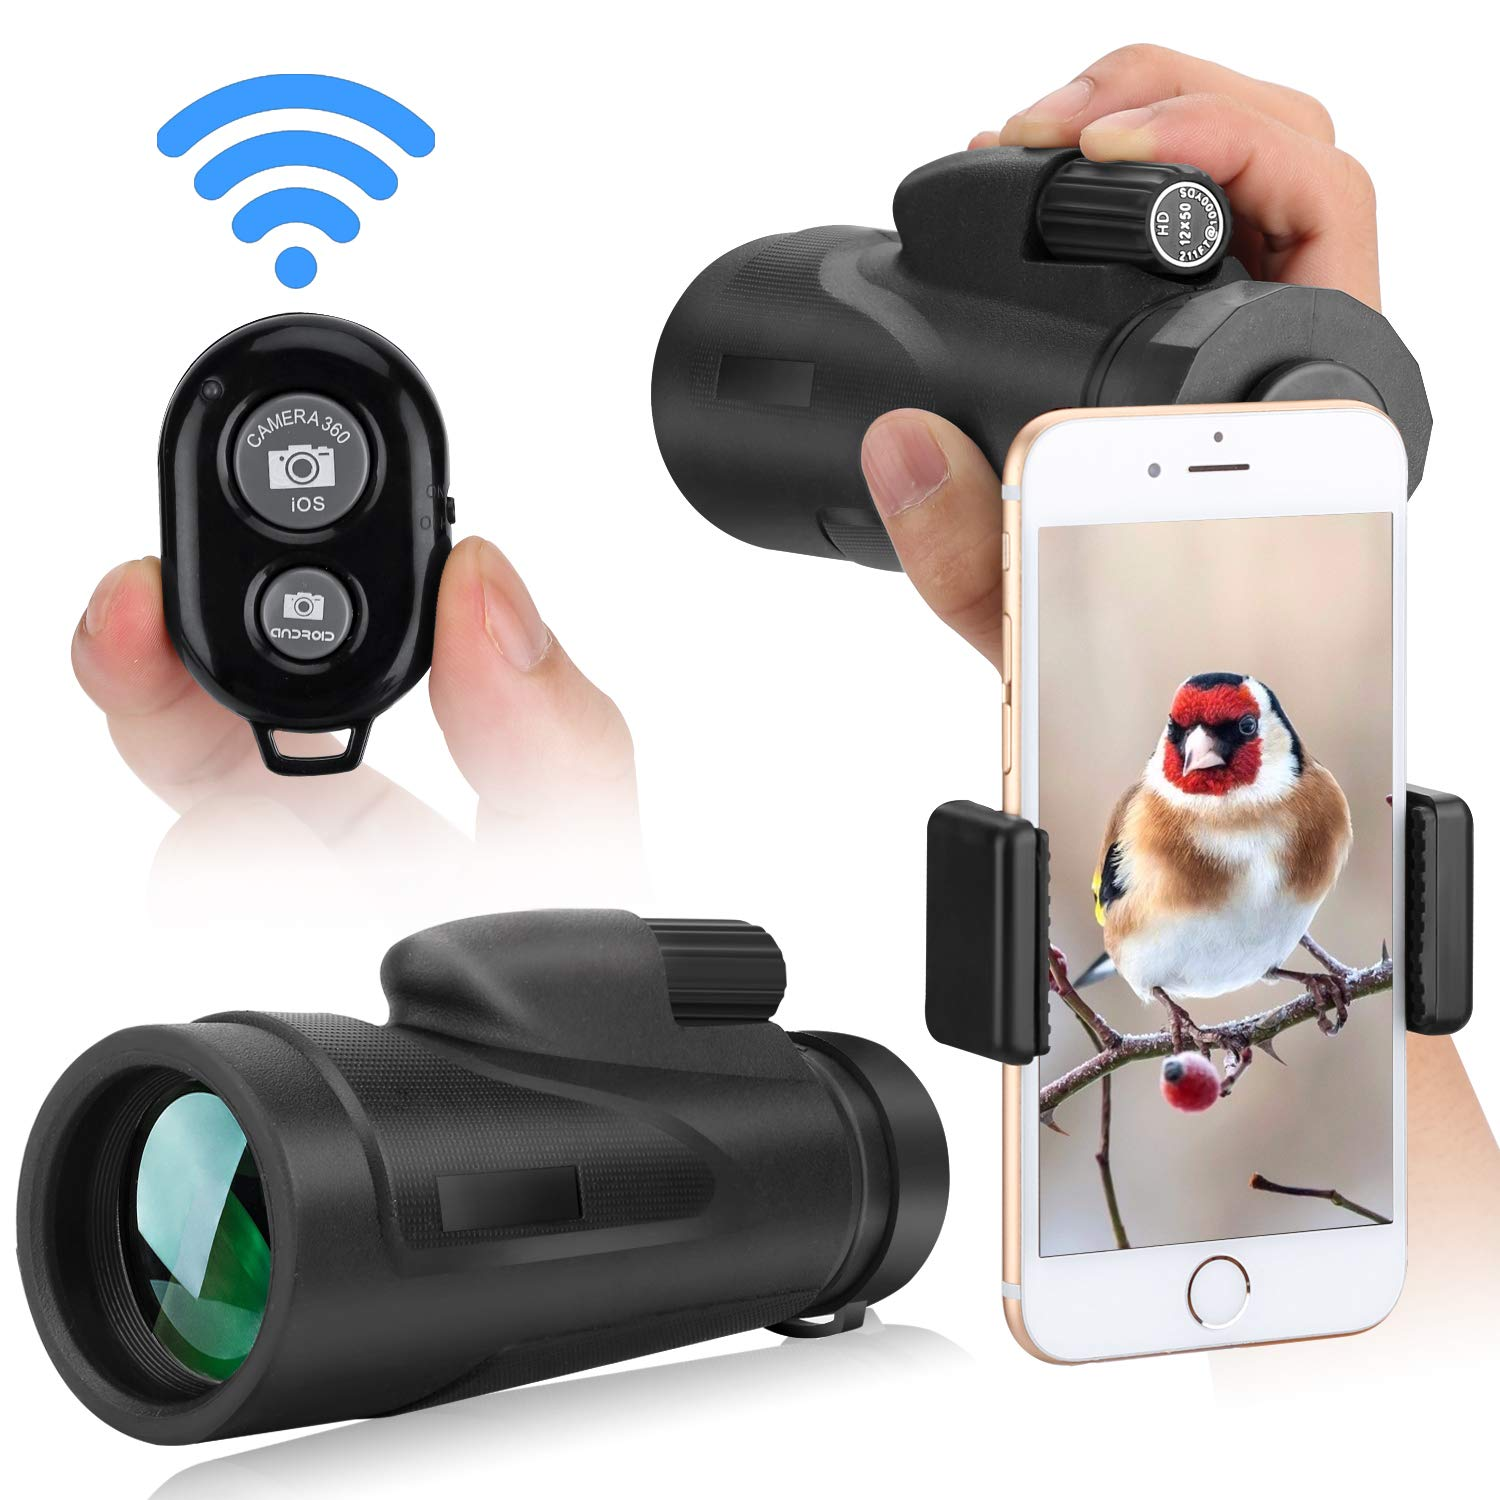 Monocular Telescope for iPhone Smartphone, 12X50 High Power BAK4 Prism Monocular with Waterproof Fog,Telescope for Adults Bird Watching Hunting Camping Travelling CCX by CCX